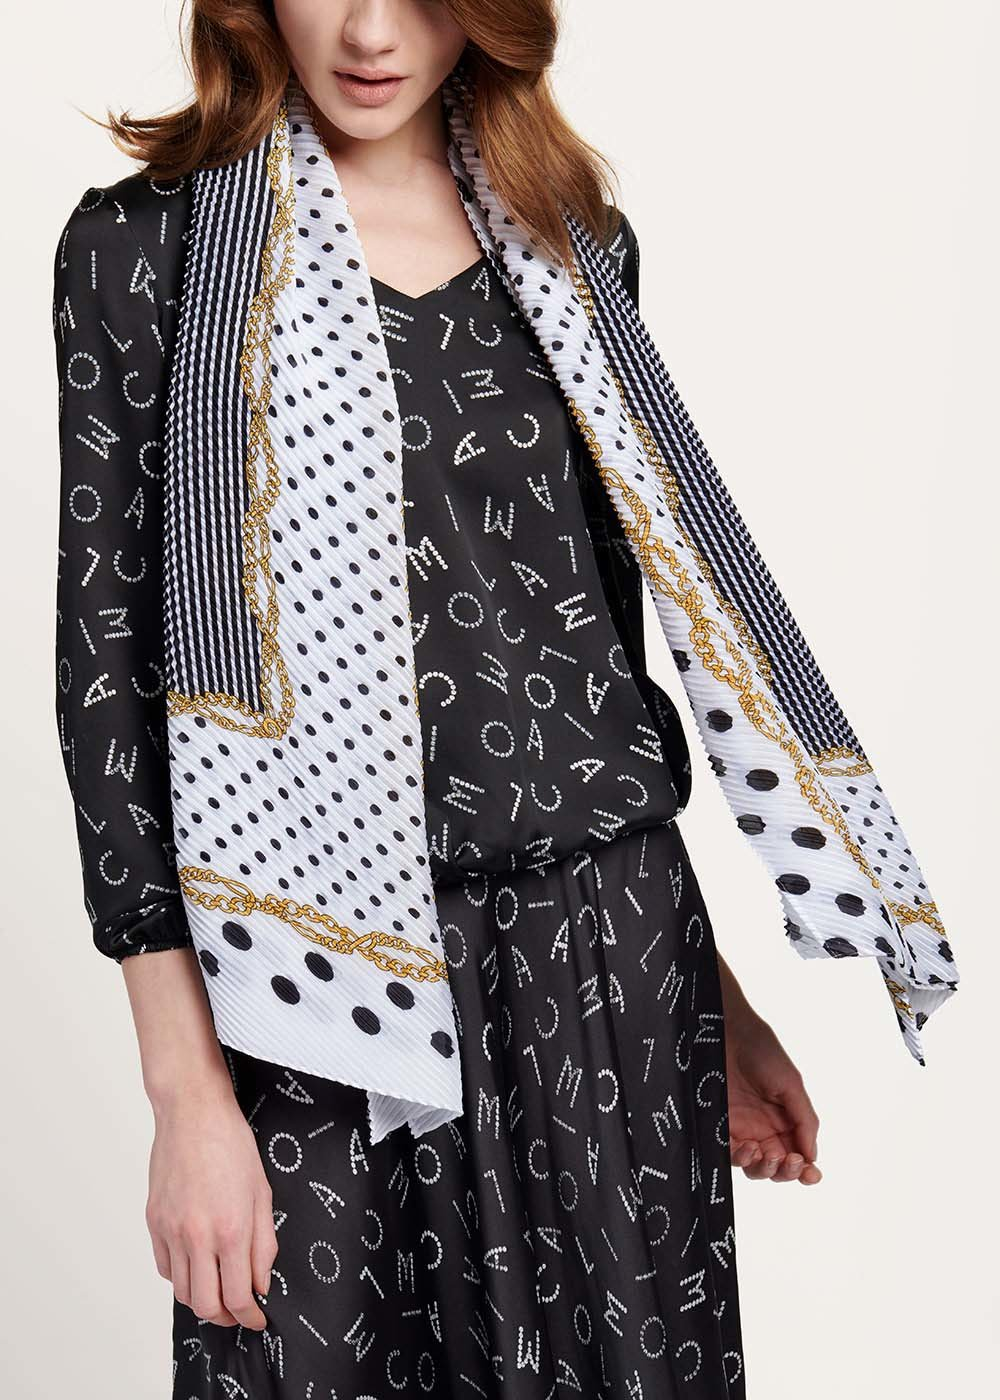 Sams scarf with chains and polka dots pattern - White Pois - Woman